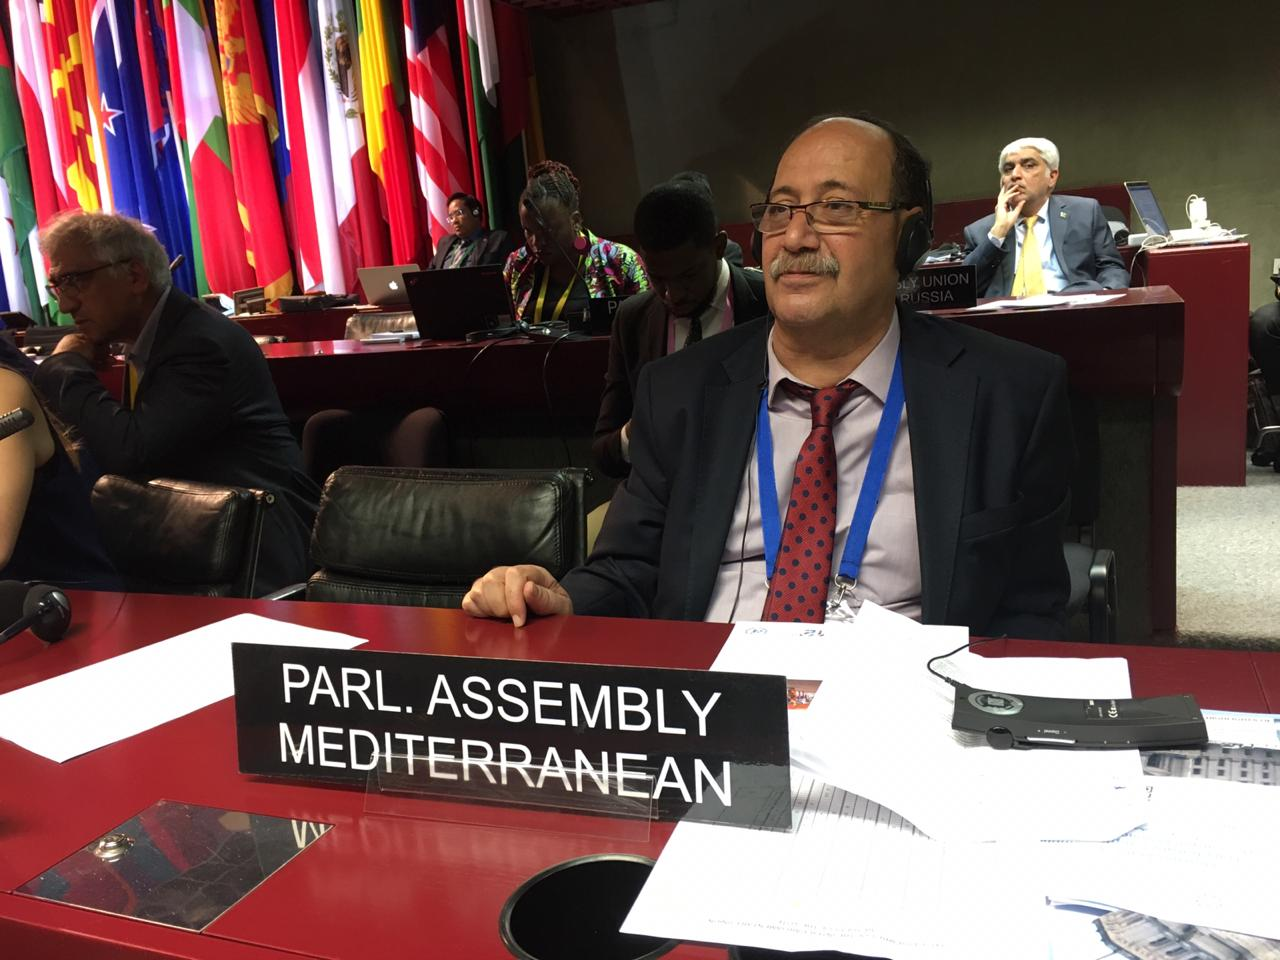 141st IPU Assembly: an opportunity for reinforced parliamentary cooperation